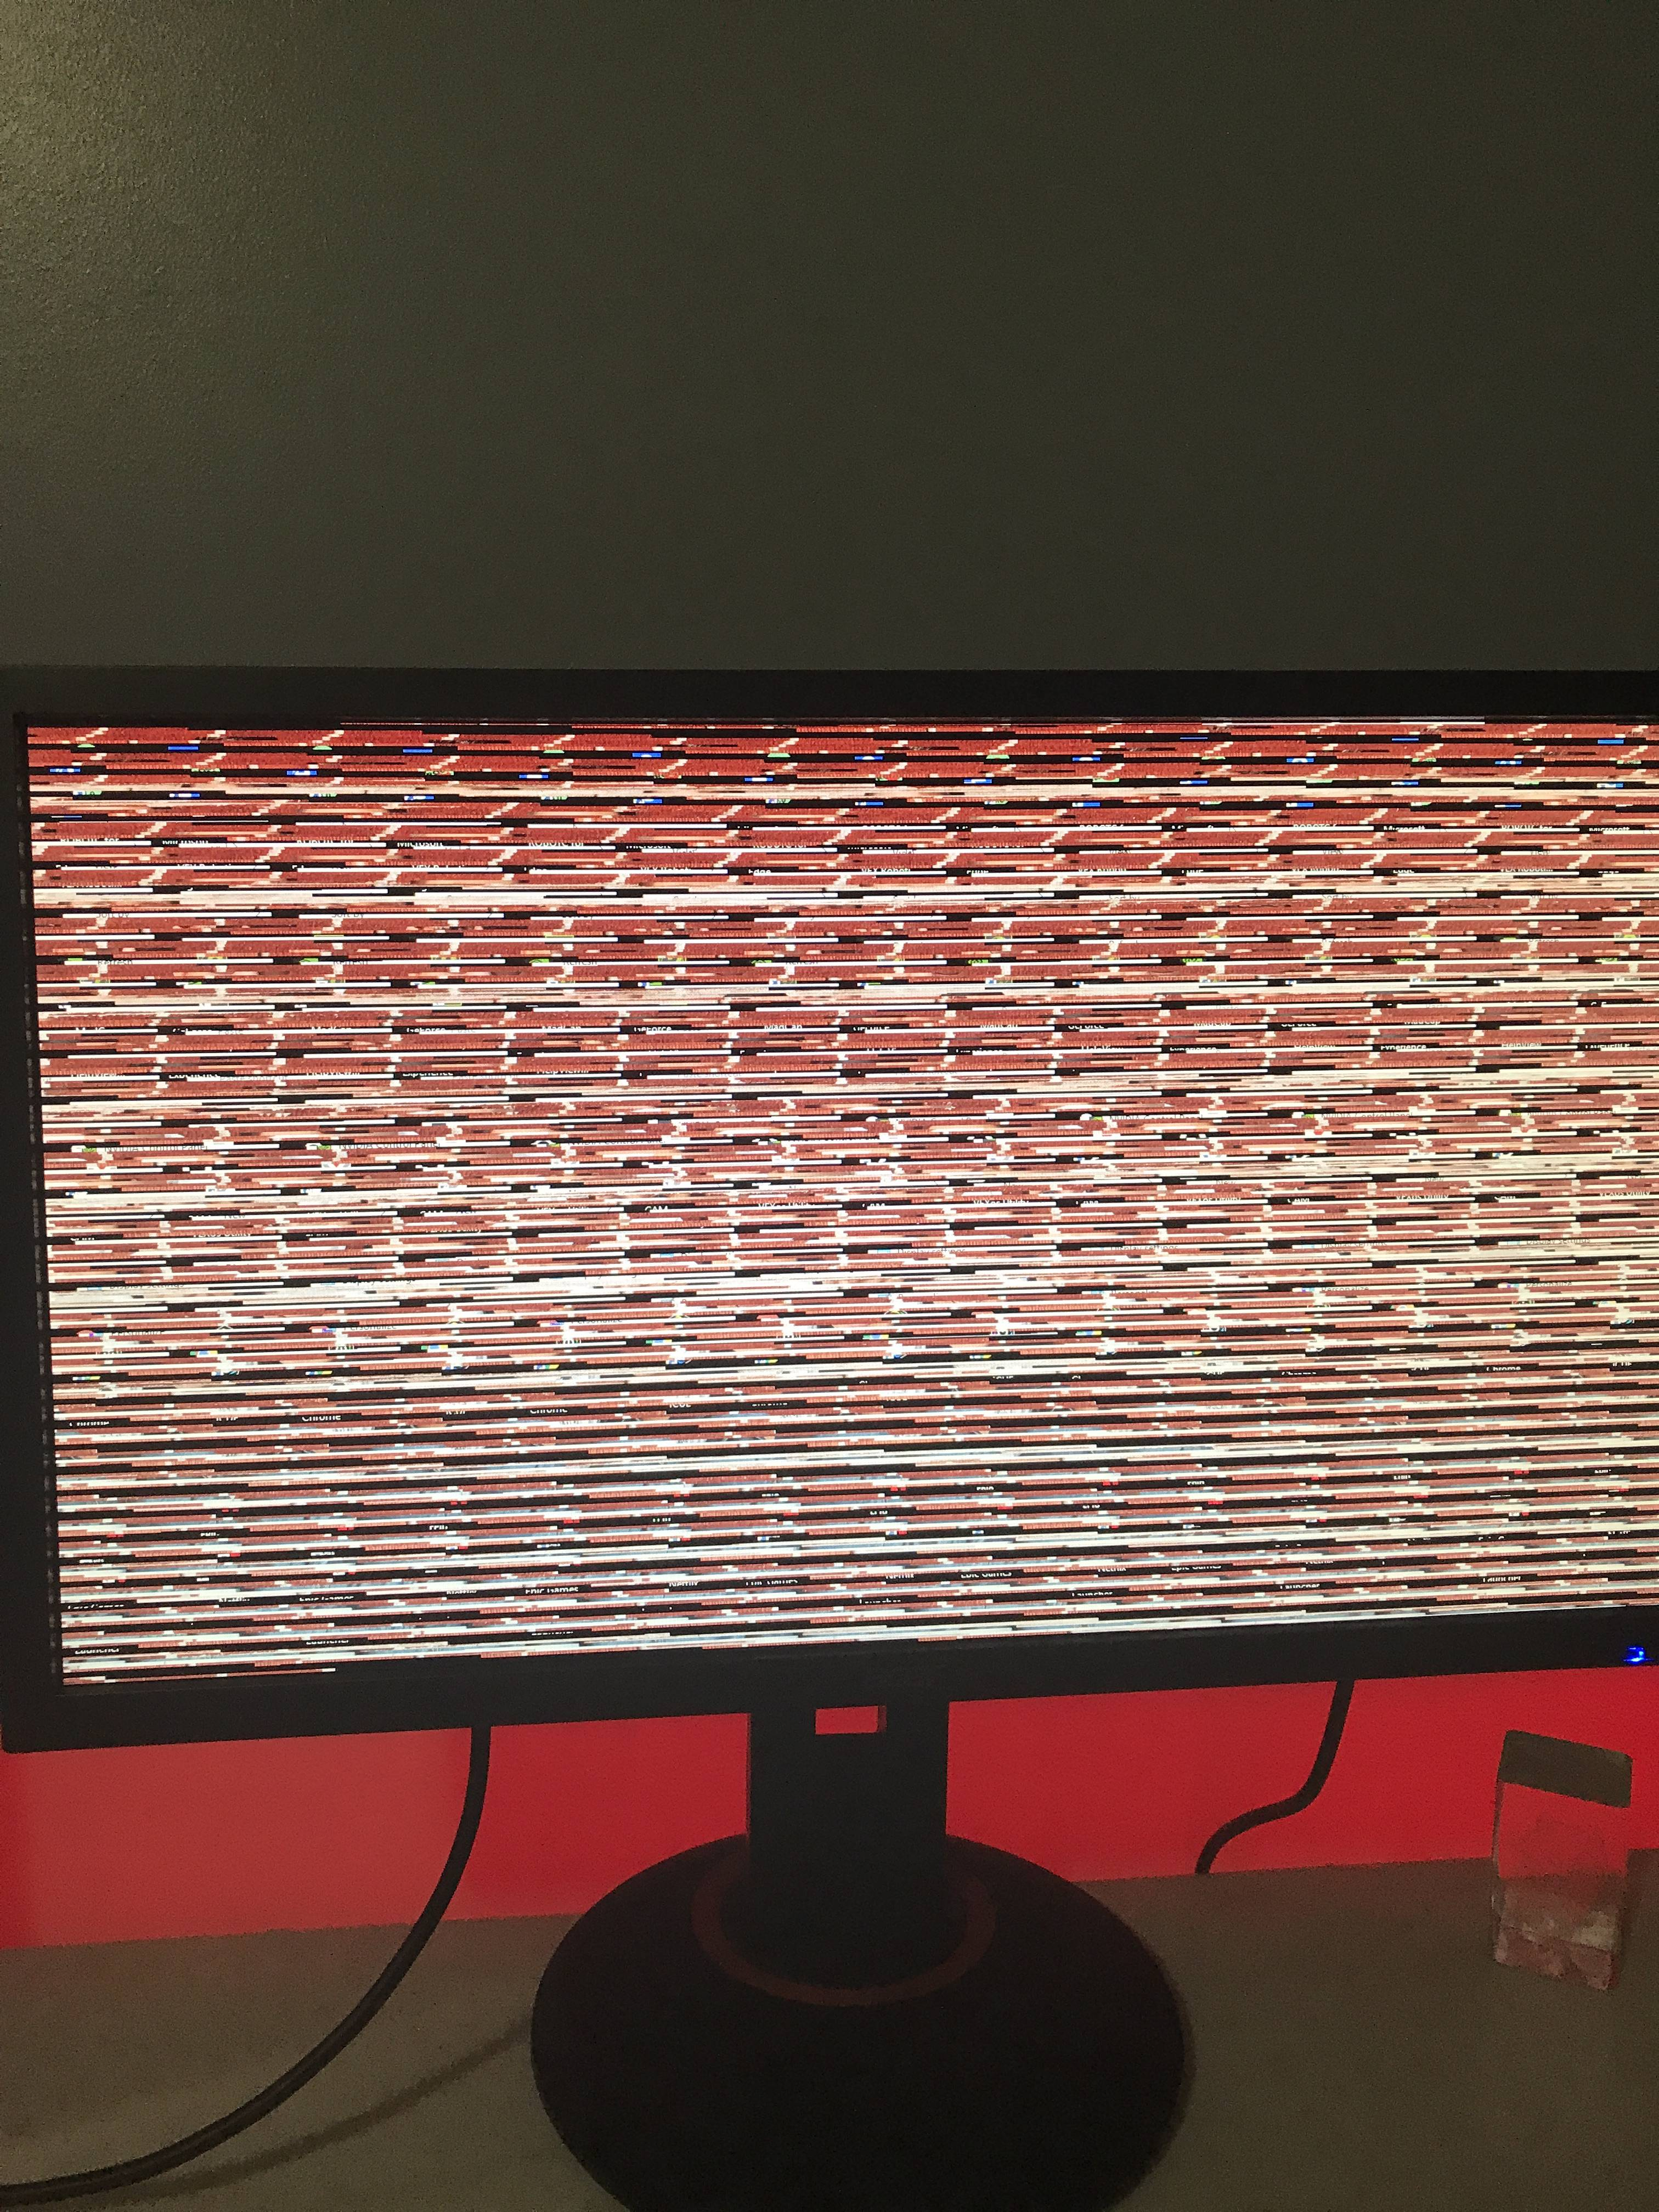 Question - Messed up Monitor Screen/ GPU or Dead Monitor DP Port